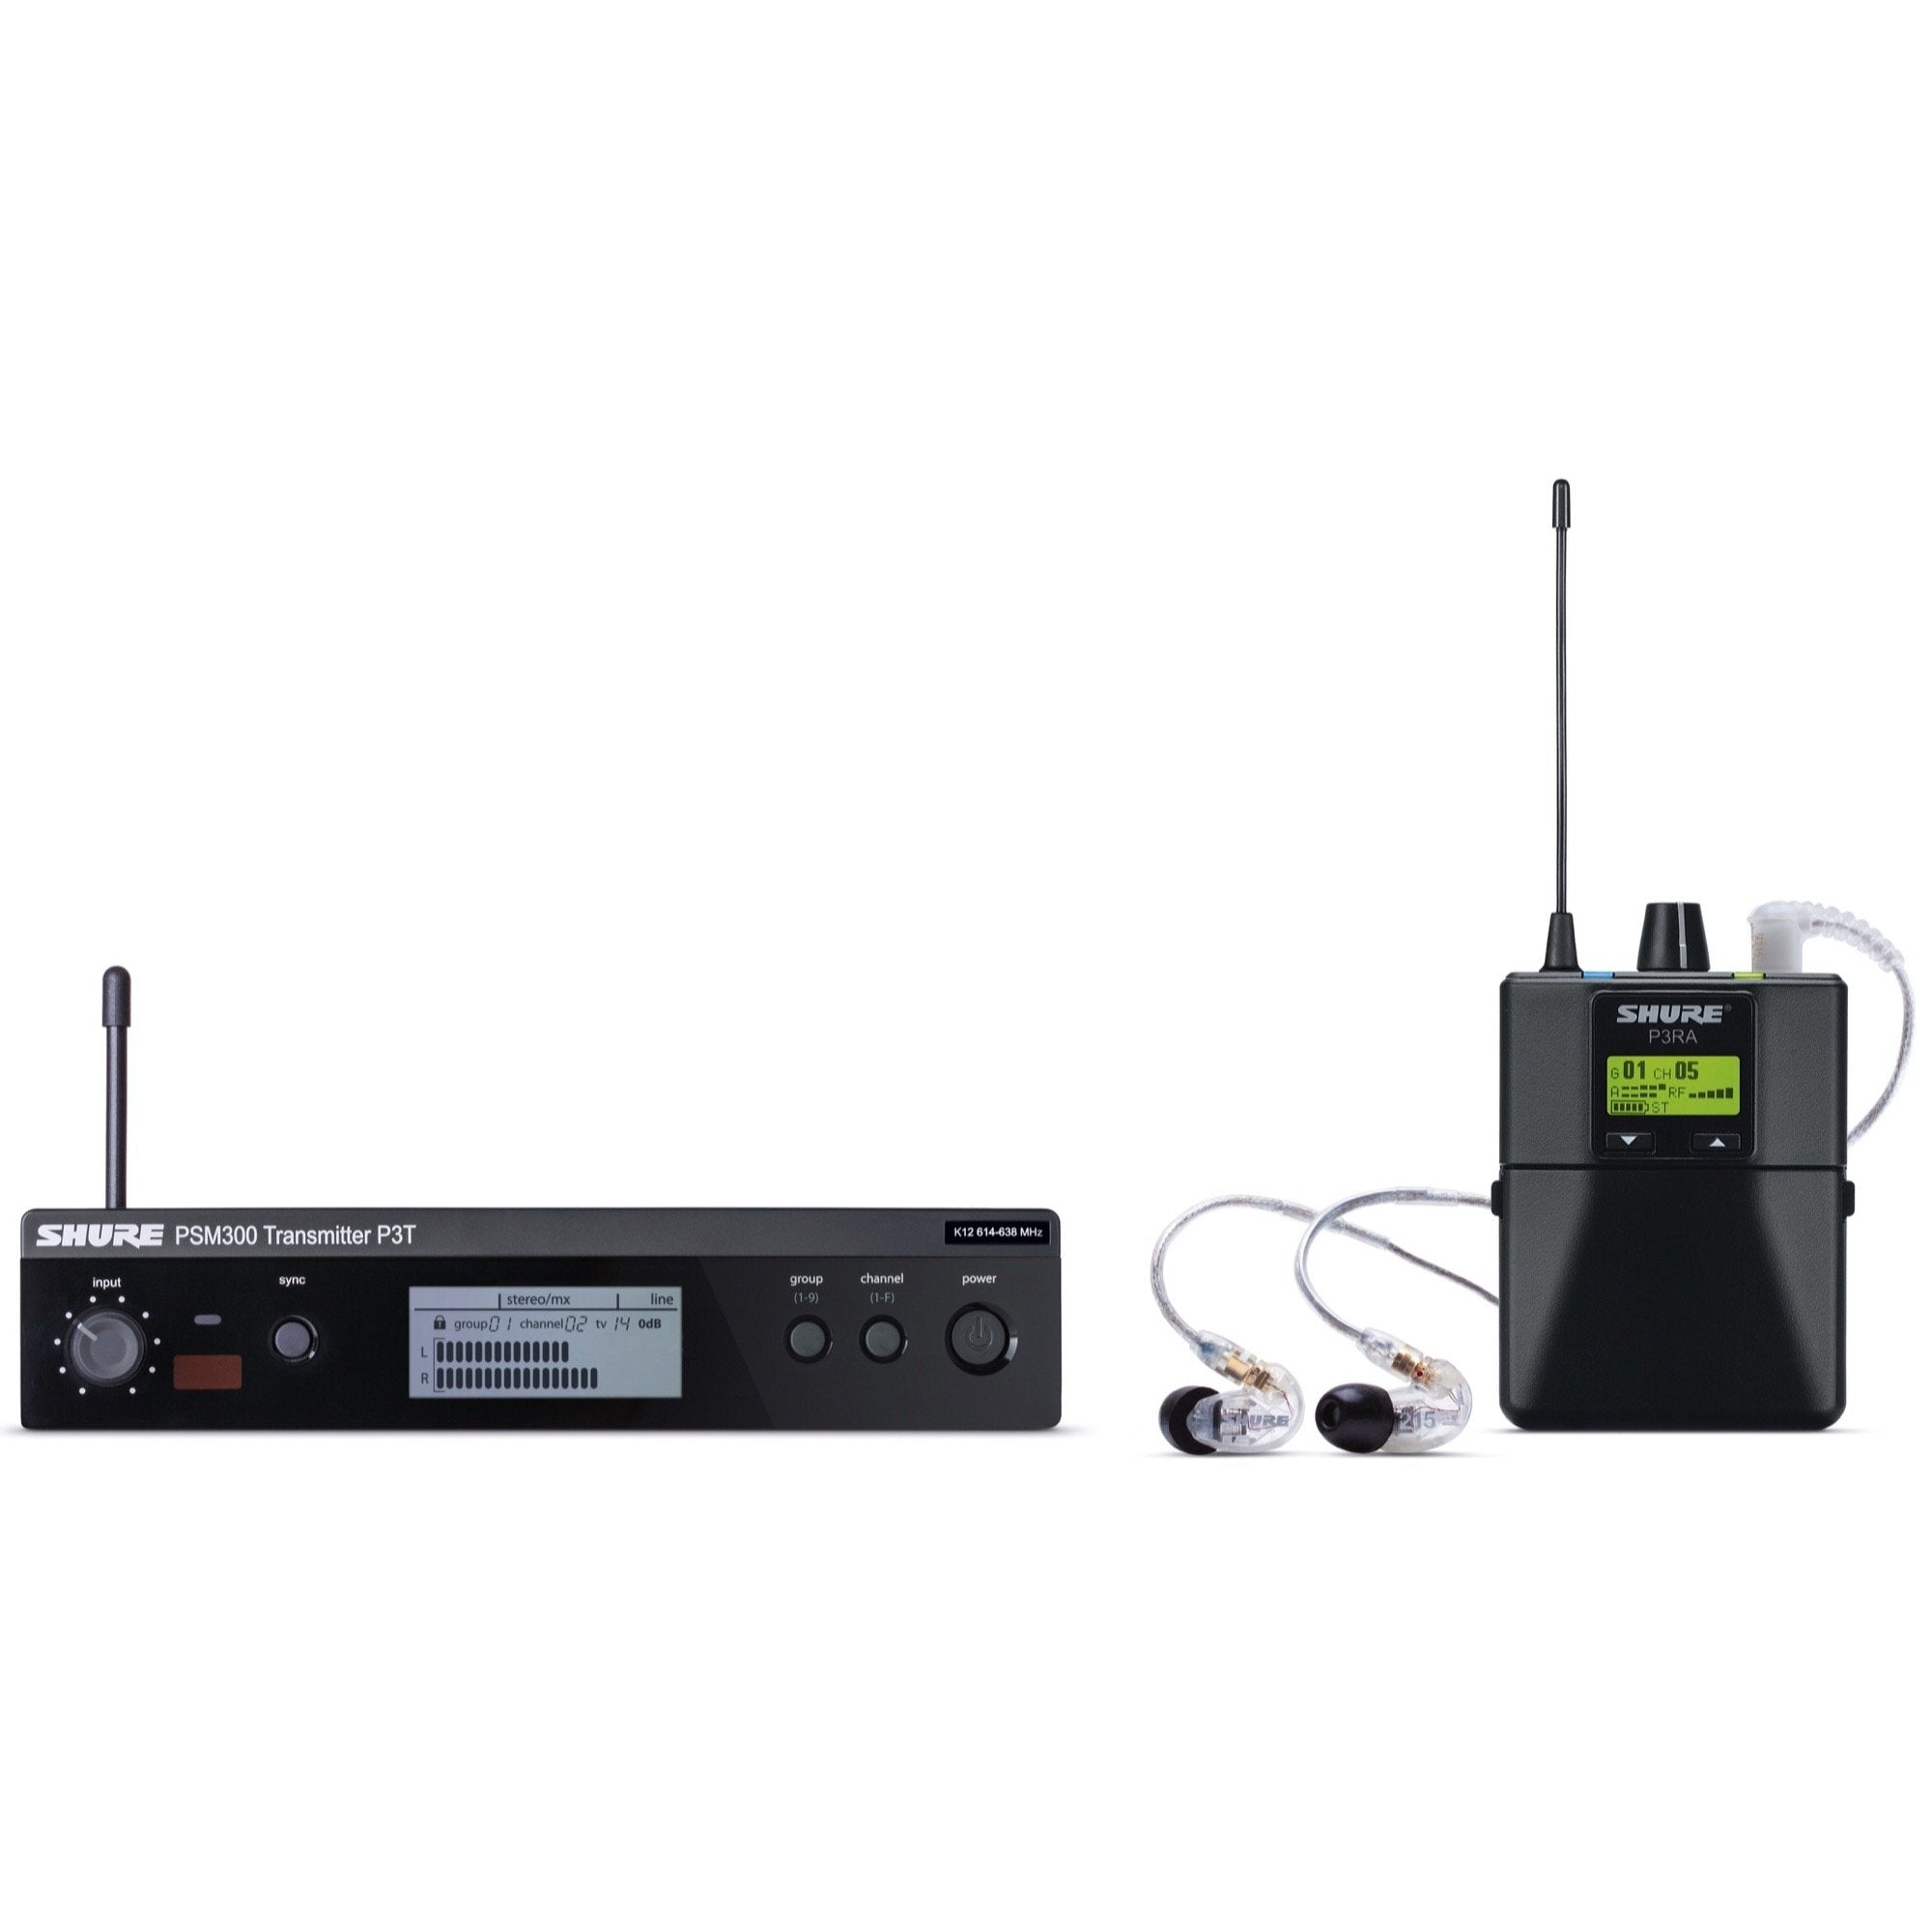 Shure PSM300 IEM Wireless In-Ear Monitor System with SE215CL Earphones, Band J13 (566.175 - 589.850 MHz)